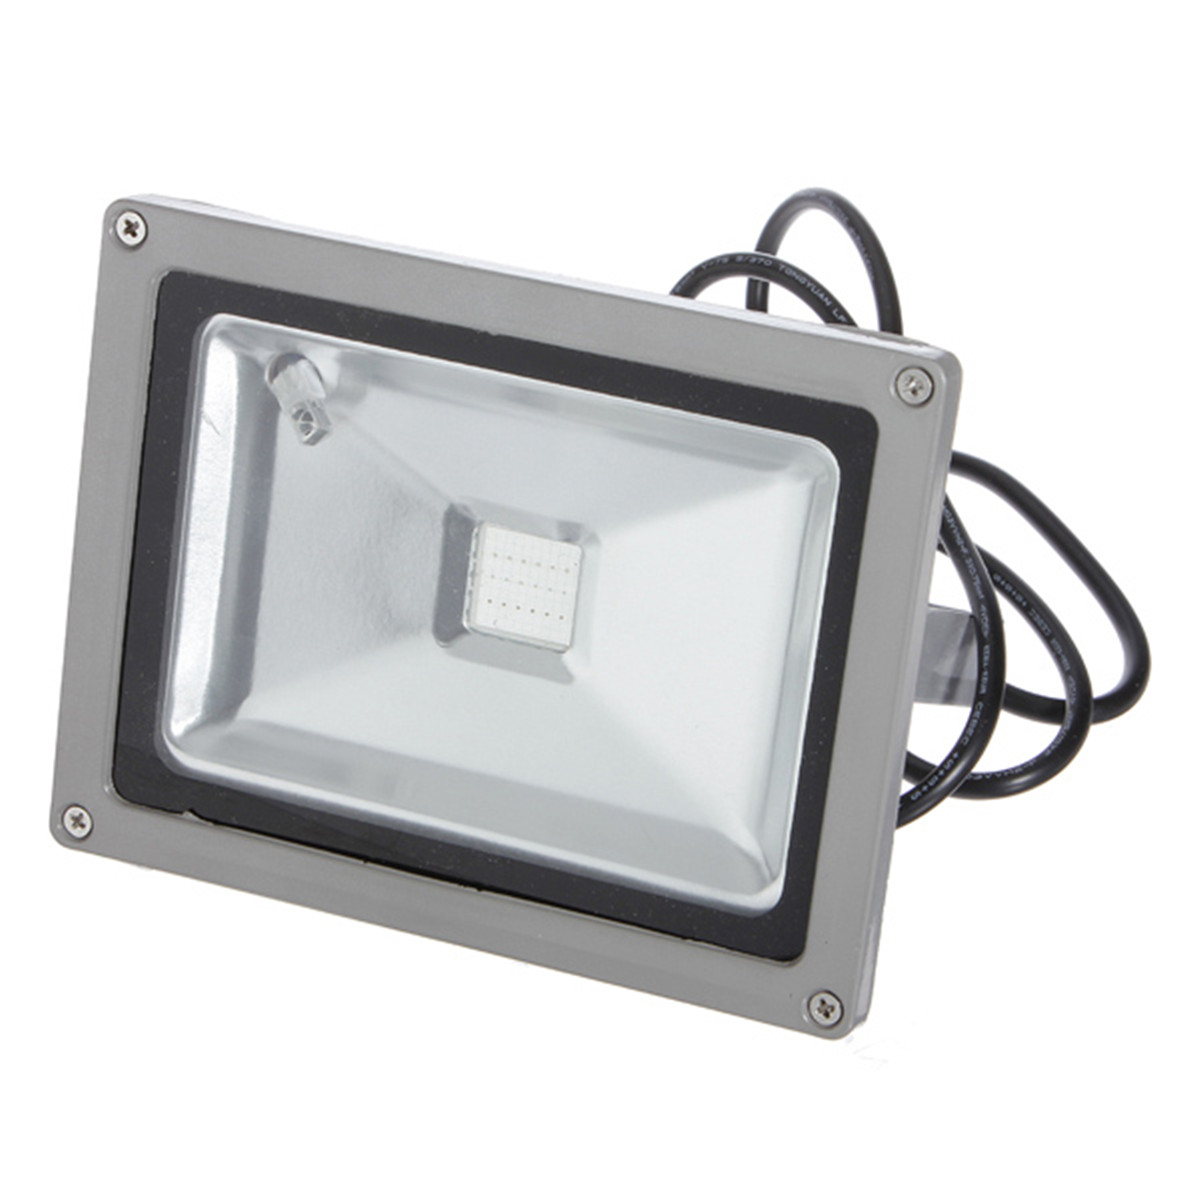 20w led lampe projecteur rgb exterieur lumiere ip65 for Lampe d exterieur a led